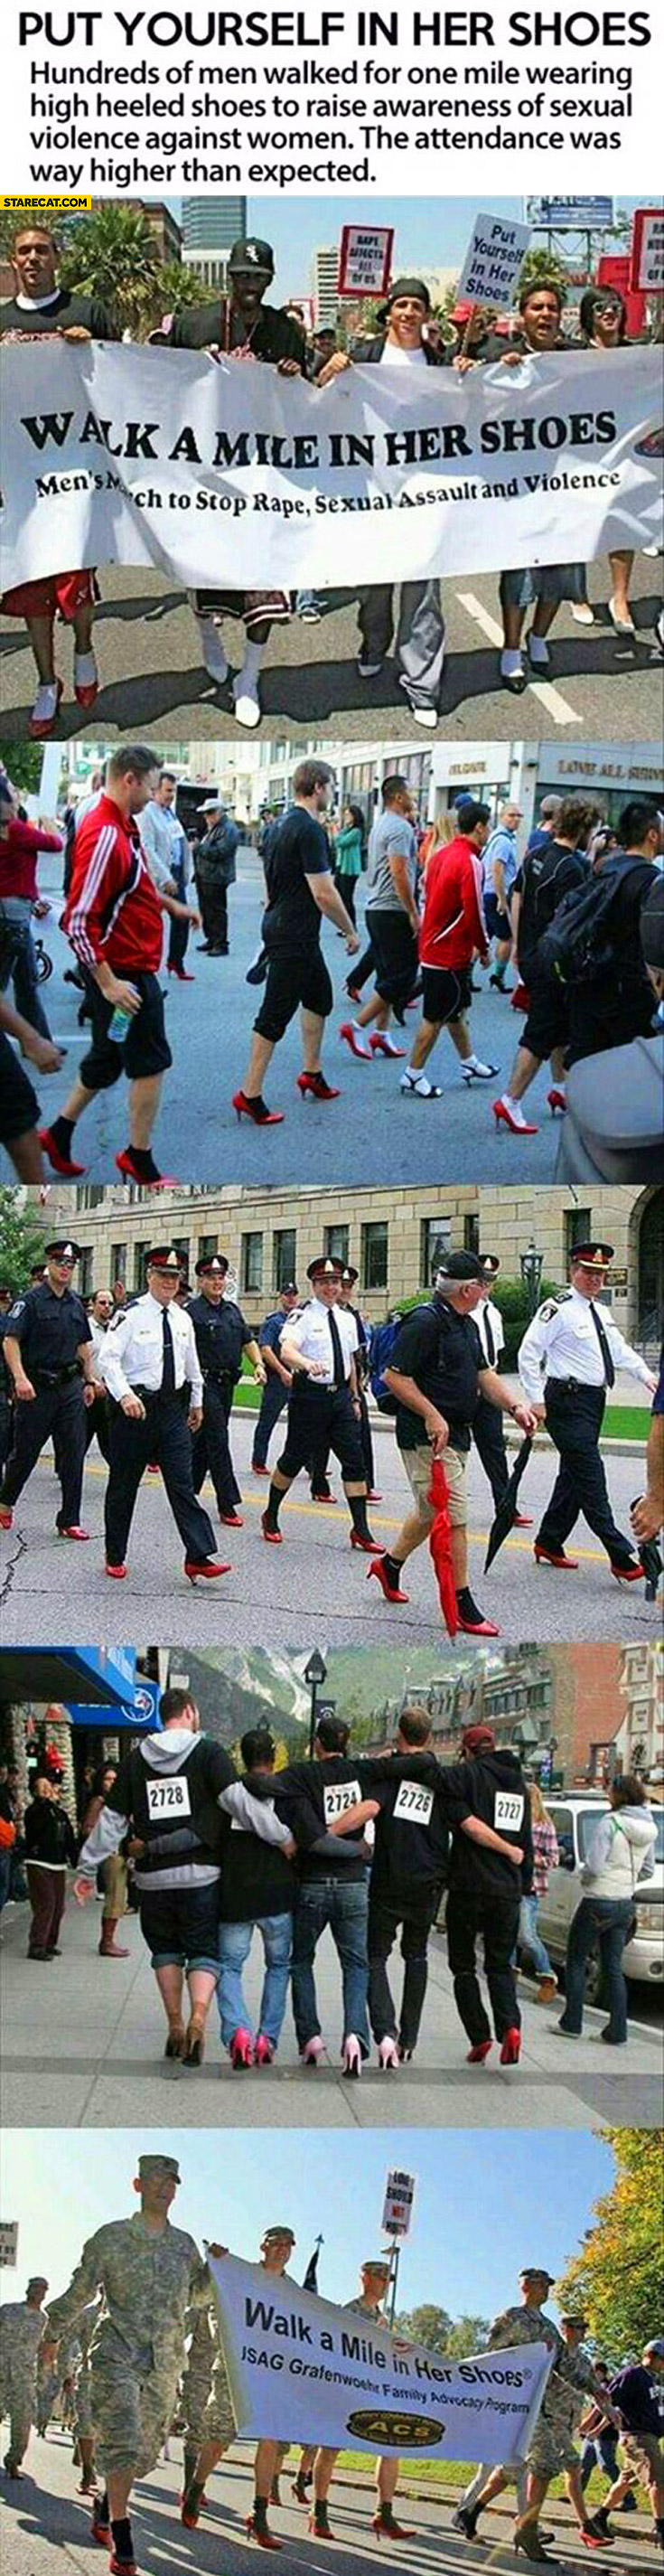 Walk a mile in her shoes men walking in high heels awarness of violence against women